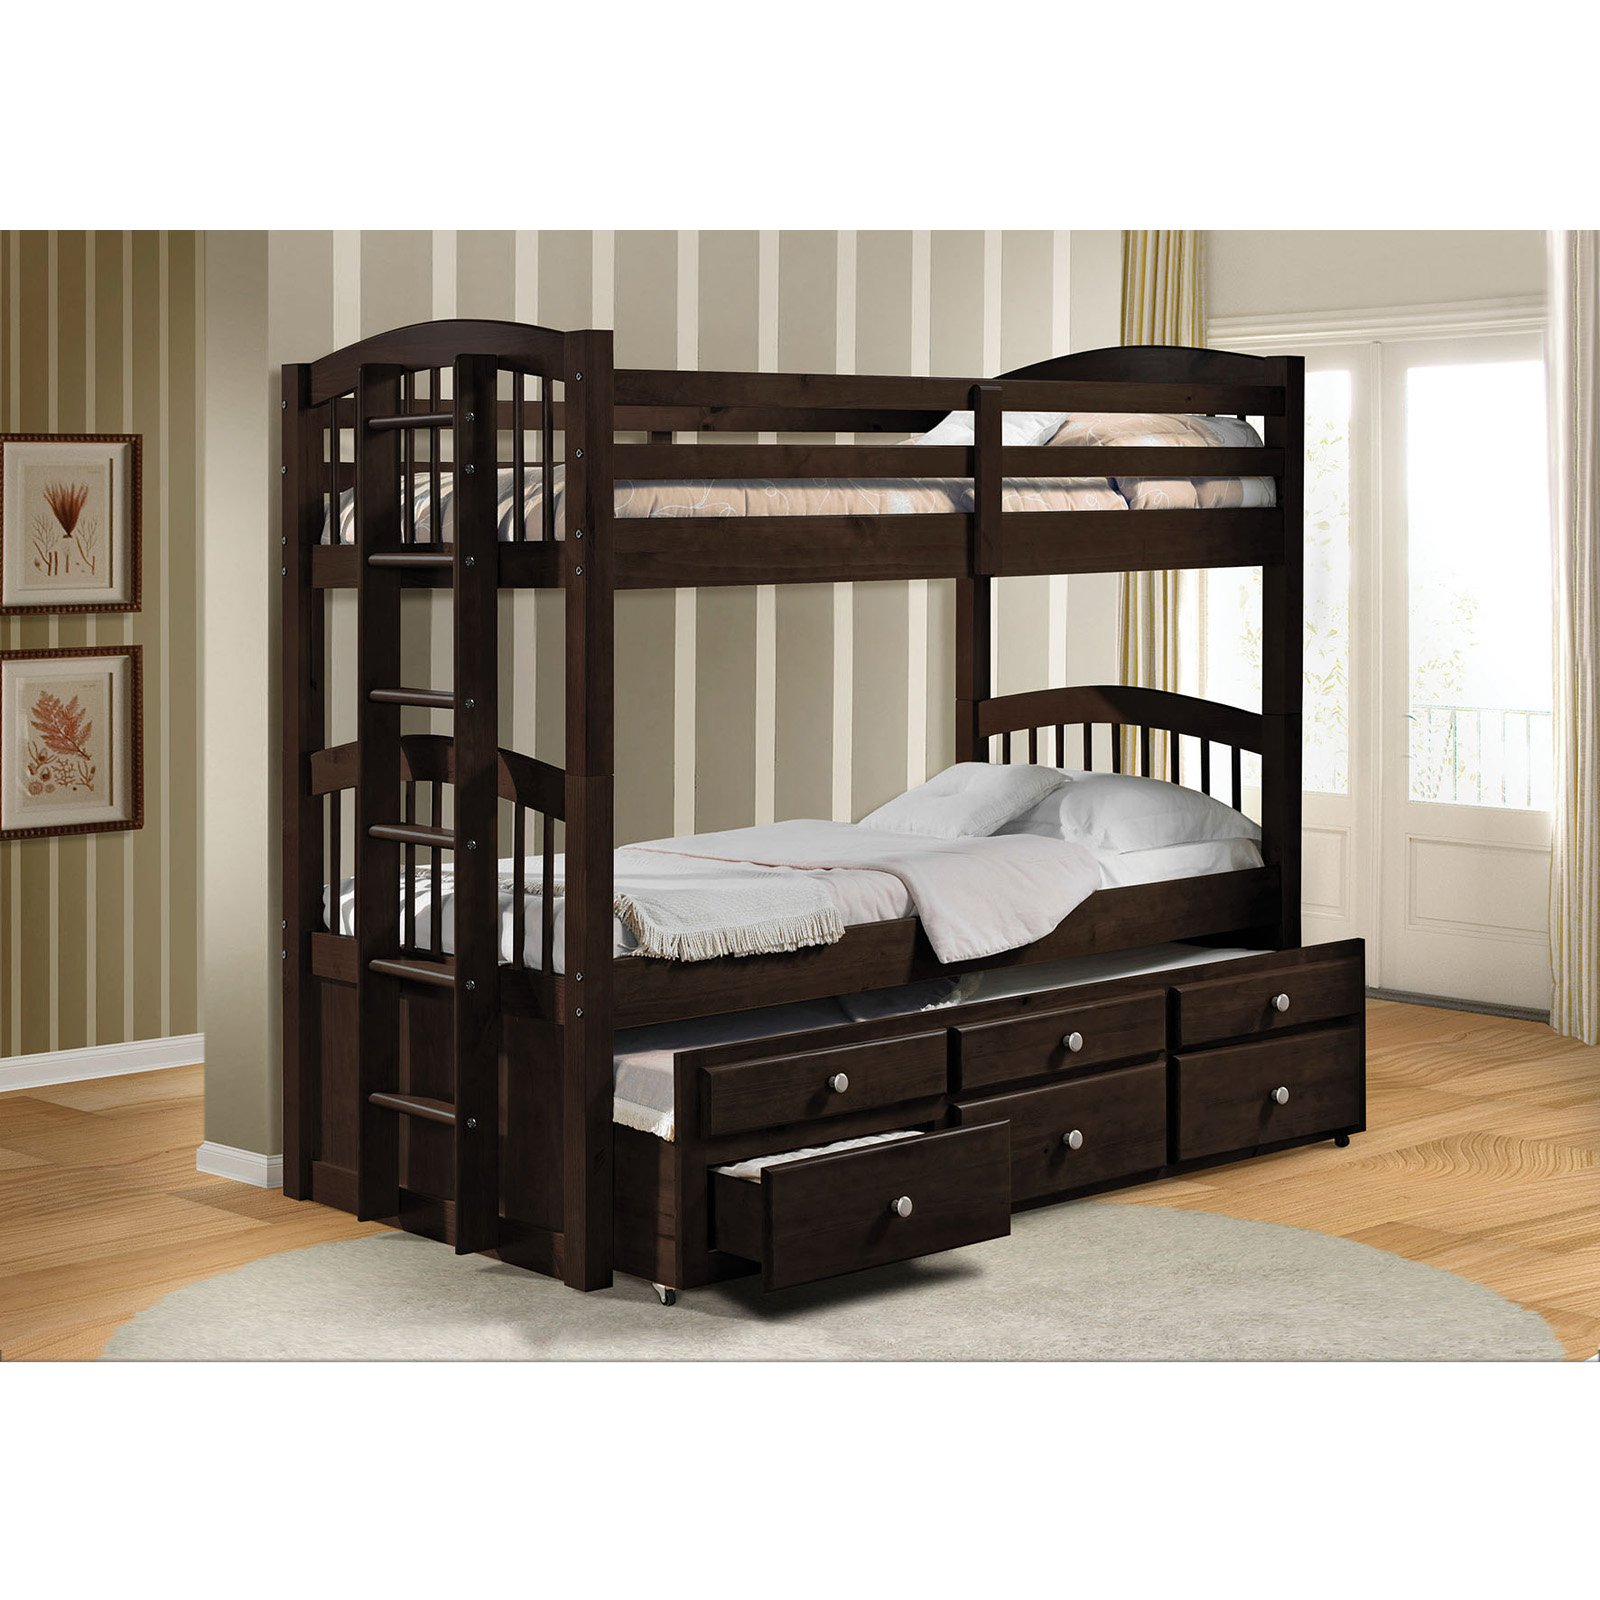 Acme Furniture Micah Twin Over Twin Bunk Bed by Acme Furniture